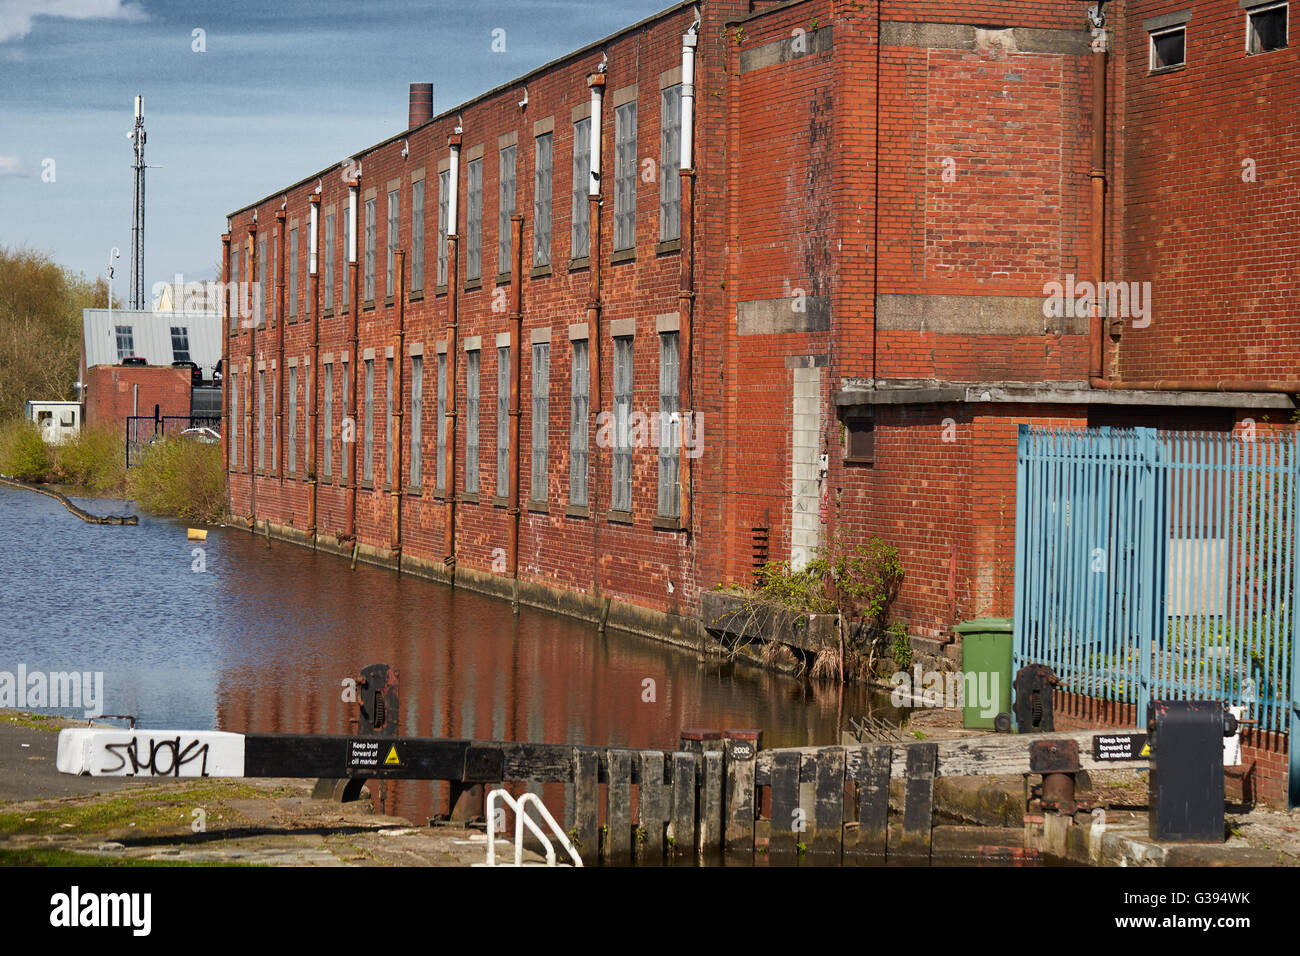 Castletown Rochdale industrial industry mills line the Rochdale Canal locks Business industrial unit estate building - Stock Image